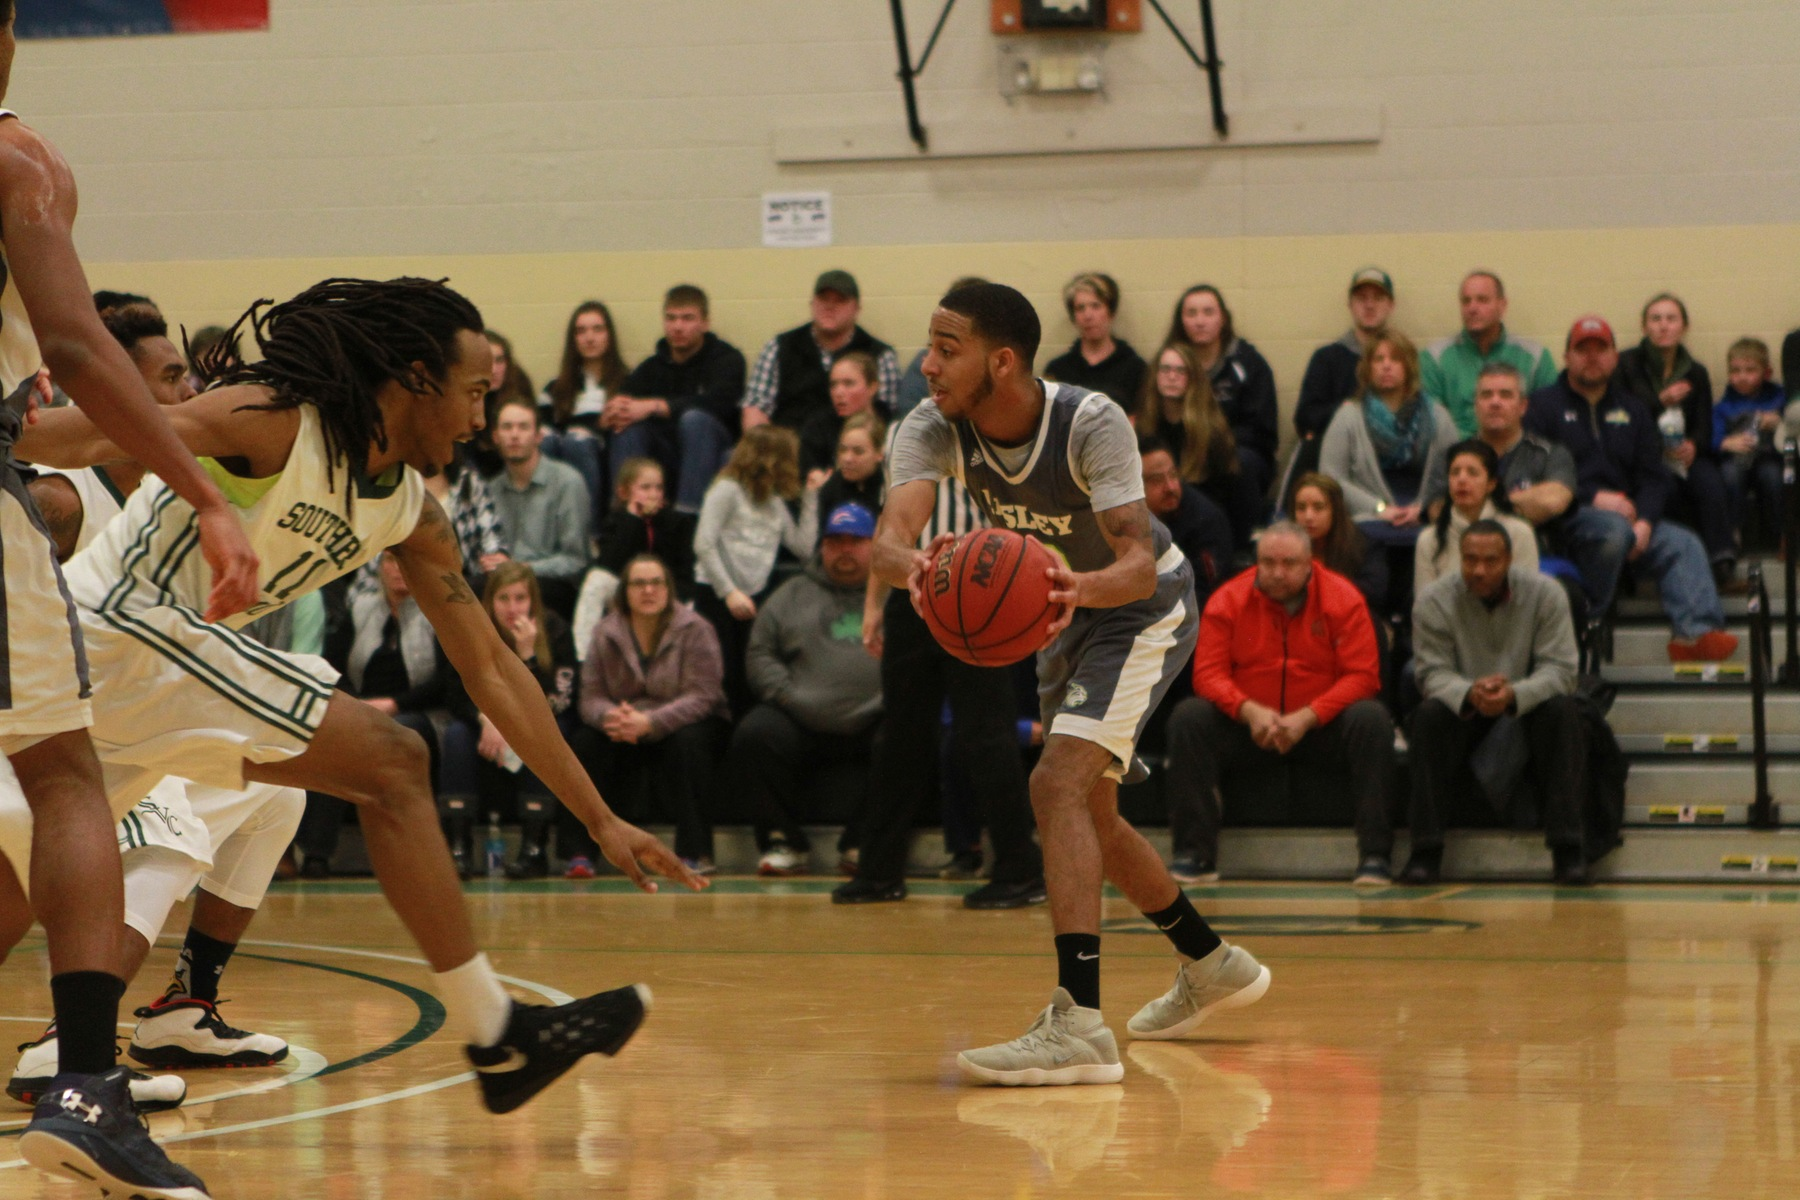 Men's Basketball Ends Season in Semi Finals